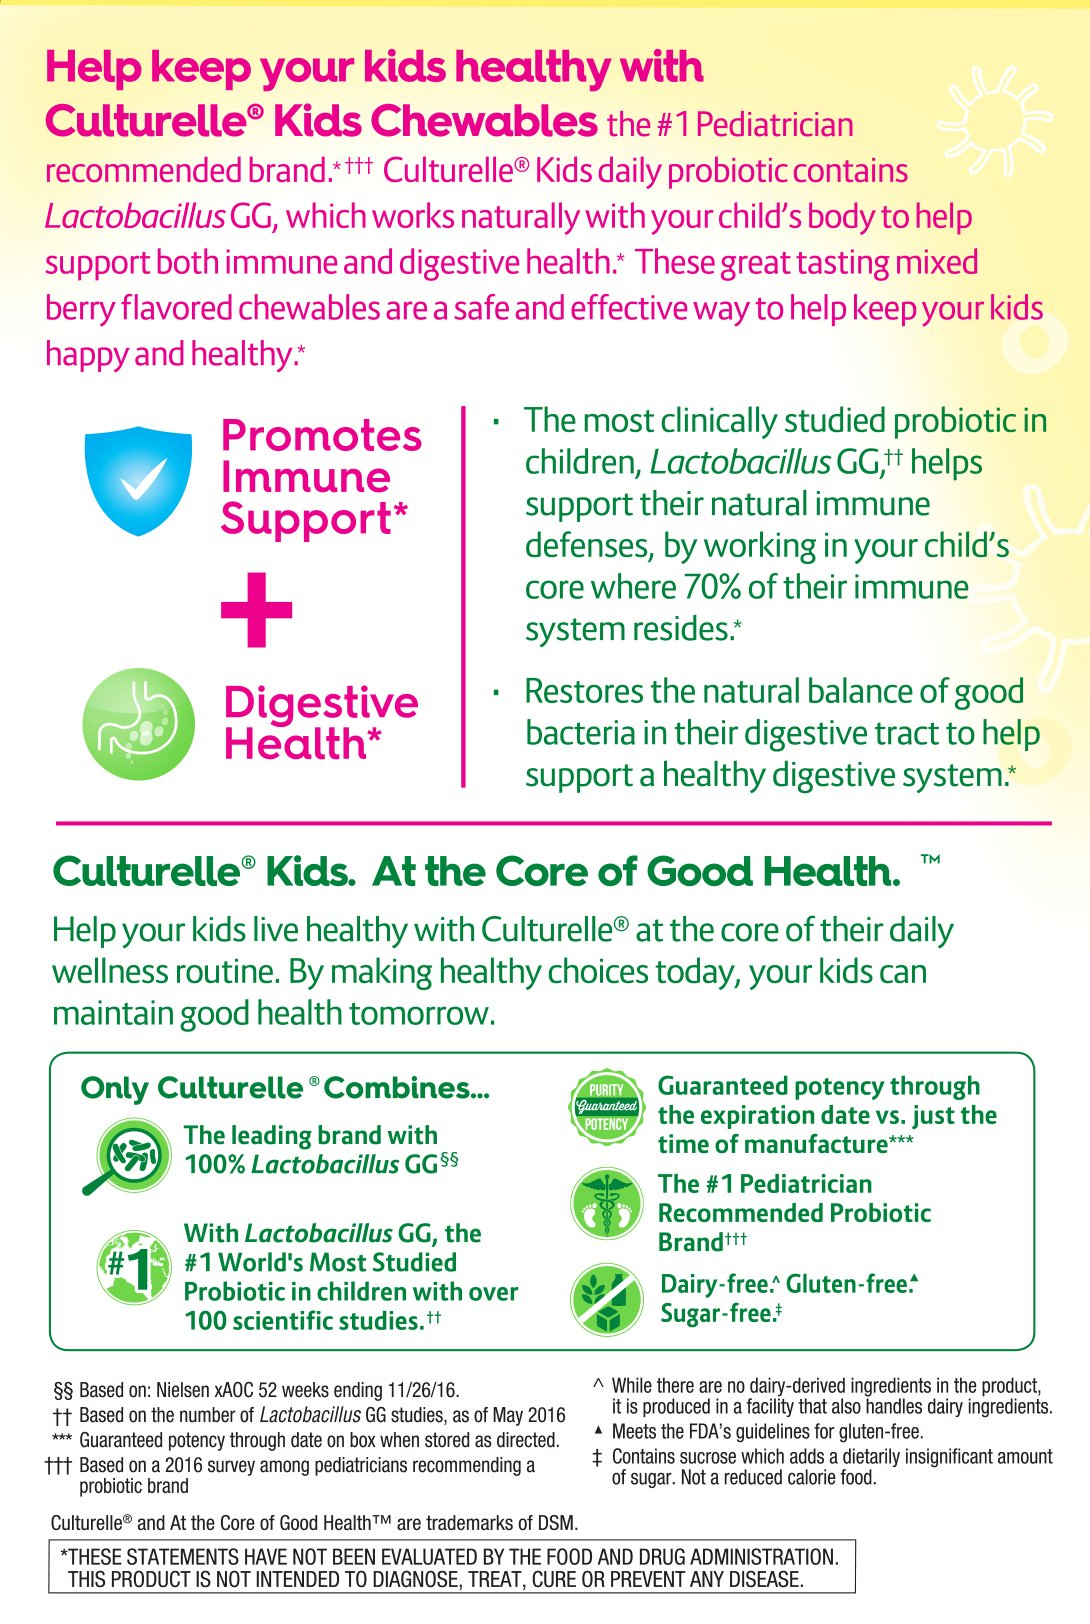 Culturelle Kids Chewables Daily Probiotic Formula, One Per Day Dietary Supplement, Contains 100% Naturally Sourced Lactobacillus GG –The Most Clinically Studied Probiotic, 30 Count(Package may vary) by Culturelle (Image #3)